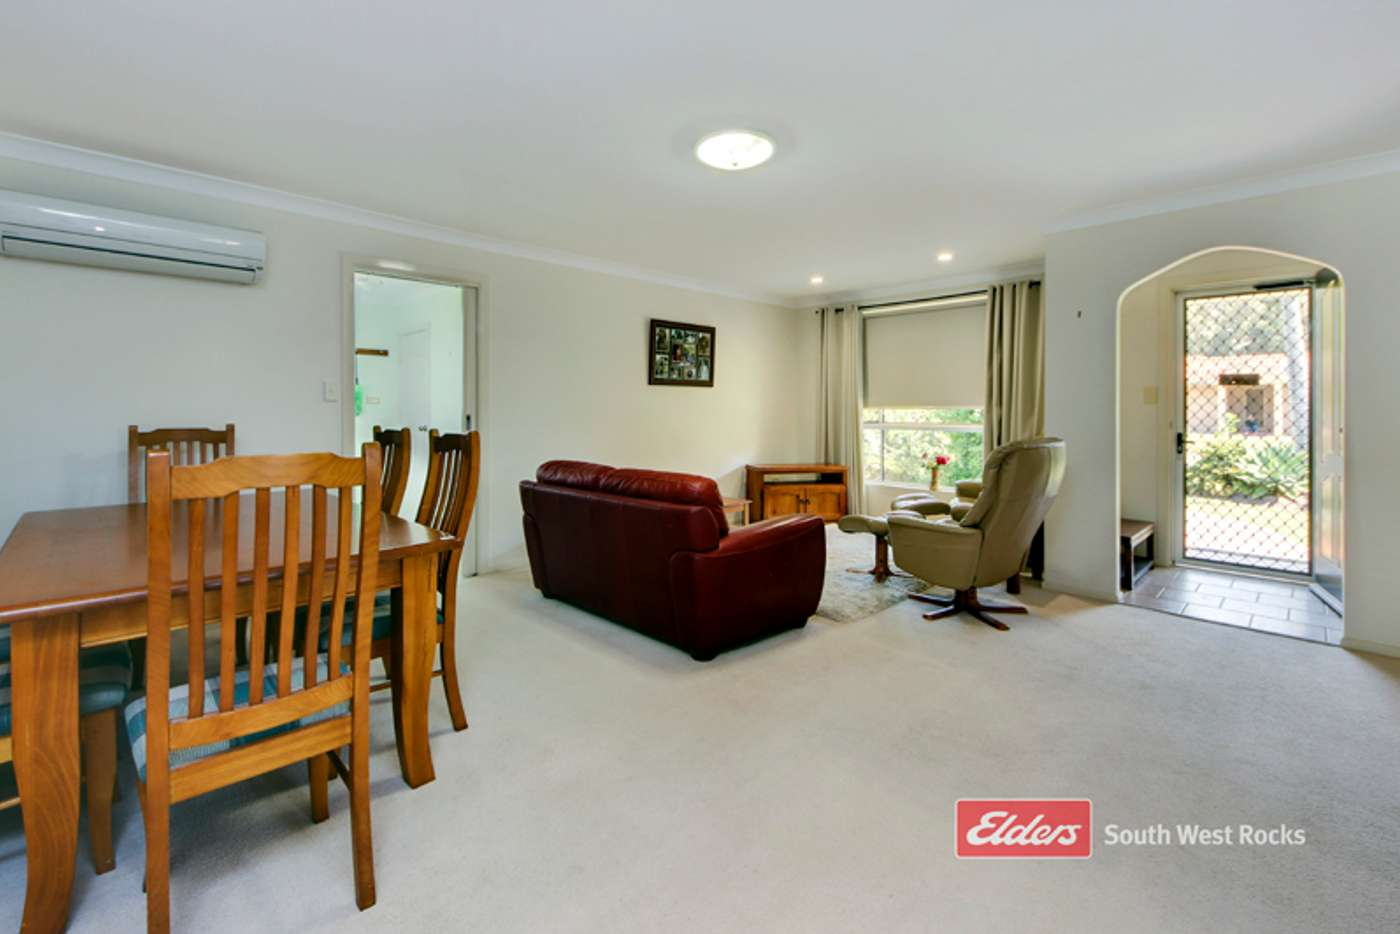 Sixth view of Homely house listing, 21 Delmer Close, South West Rocks NSW 2431